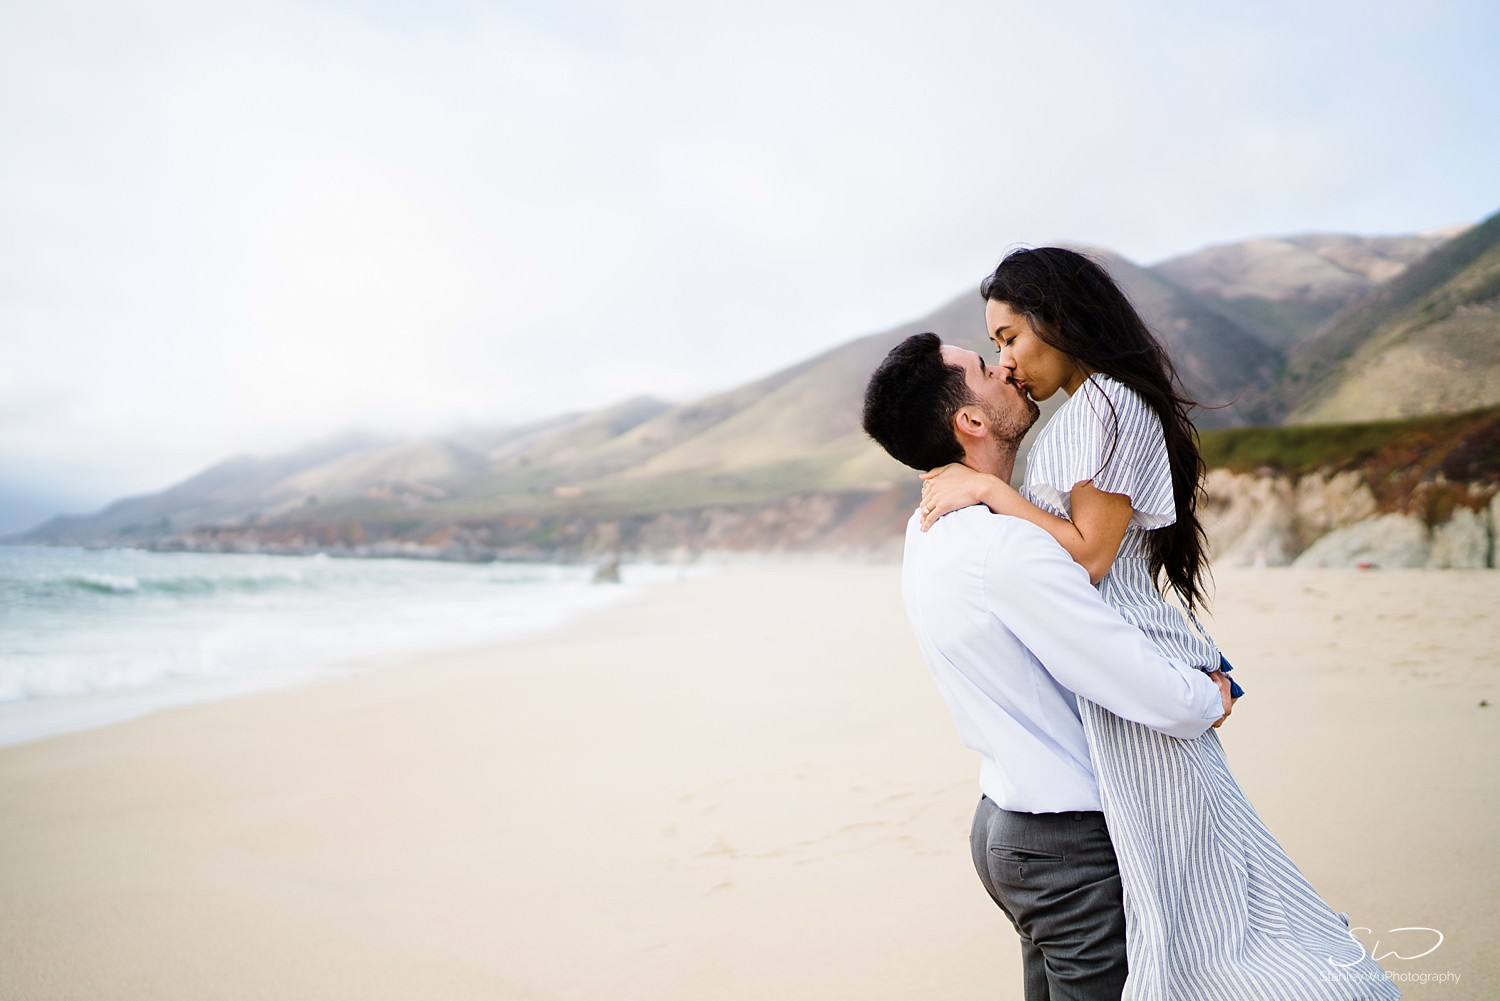 big-sur-travel-adventure-engagement-session_0042.jpg